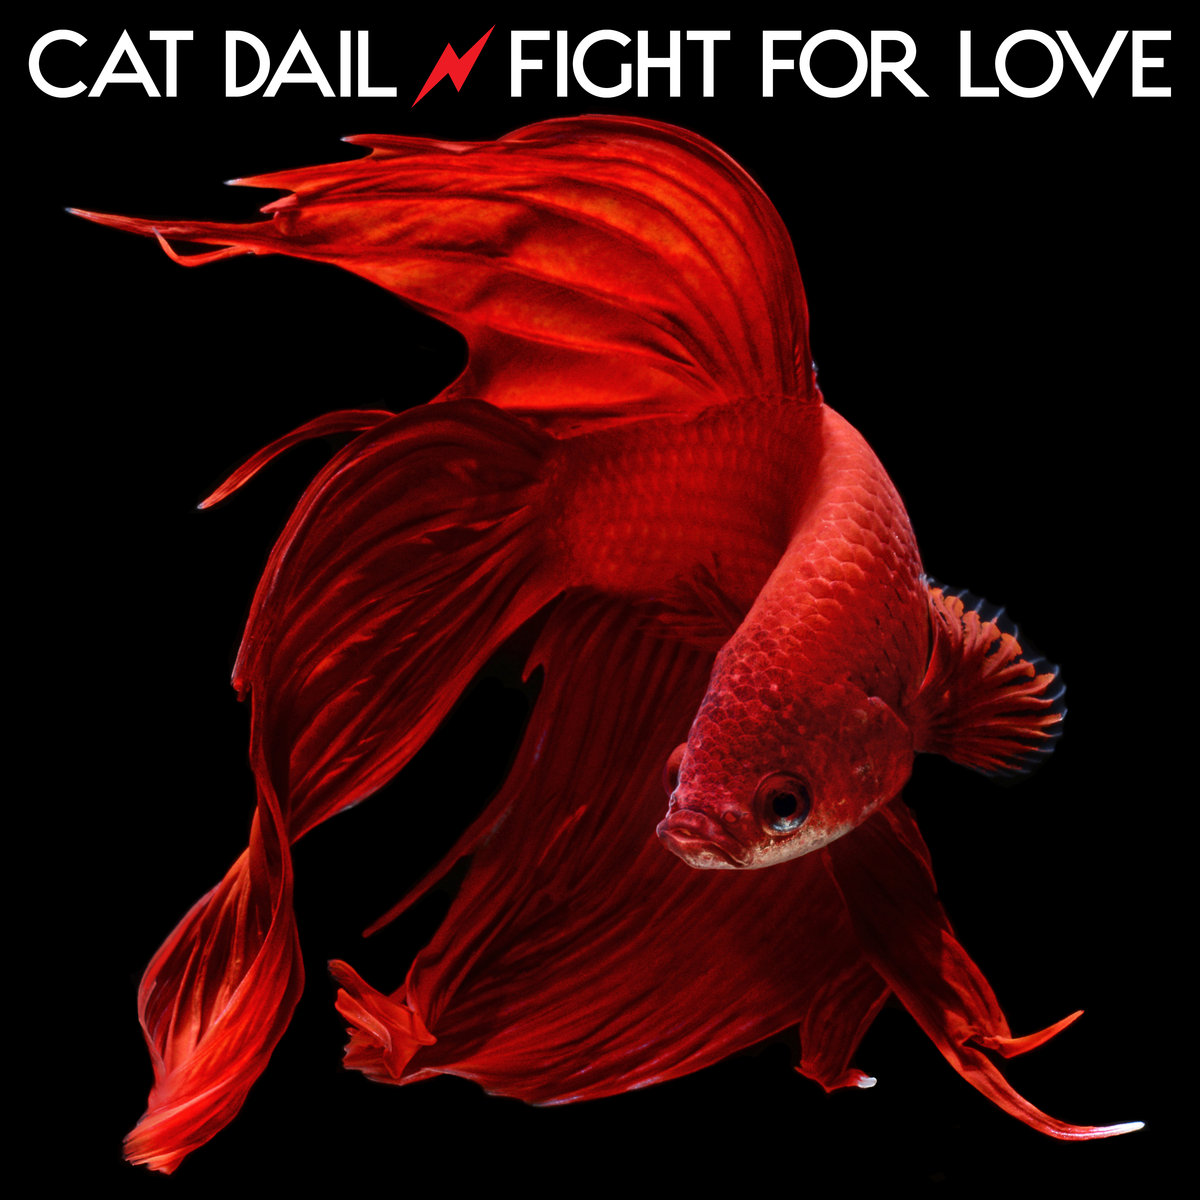 Cat Dail's Fight For Love EP